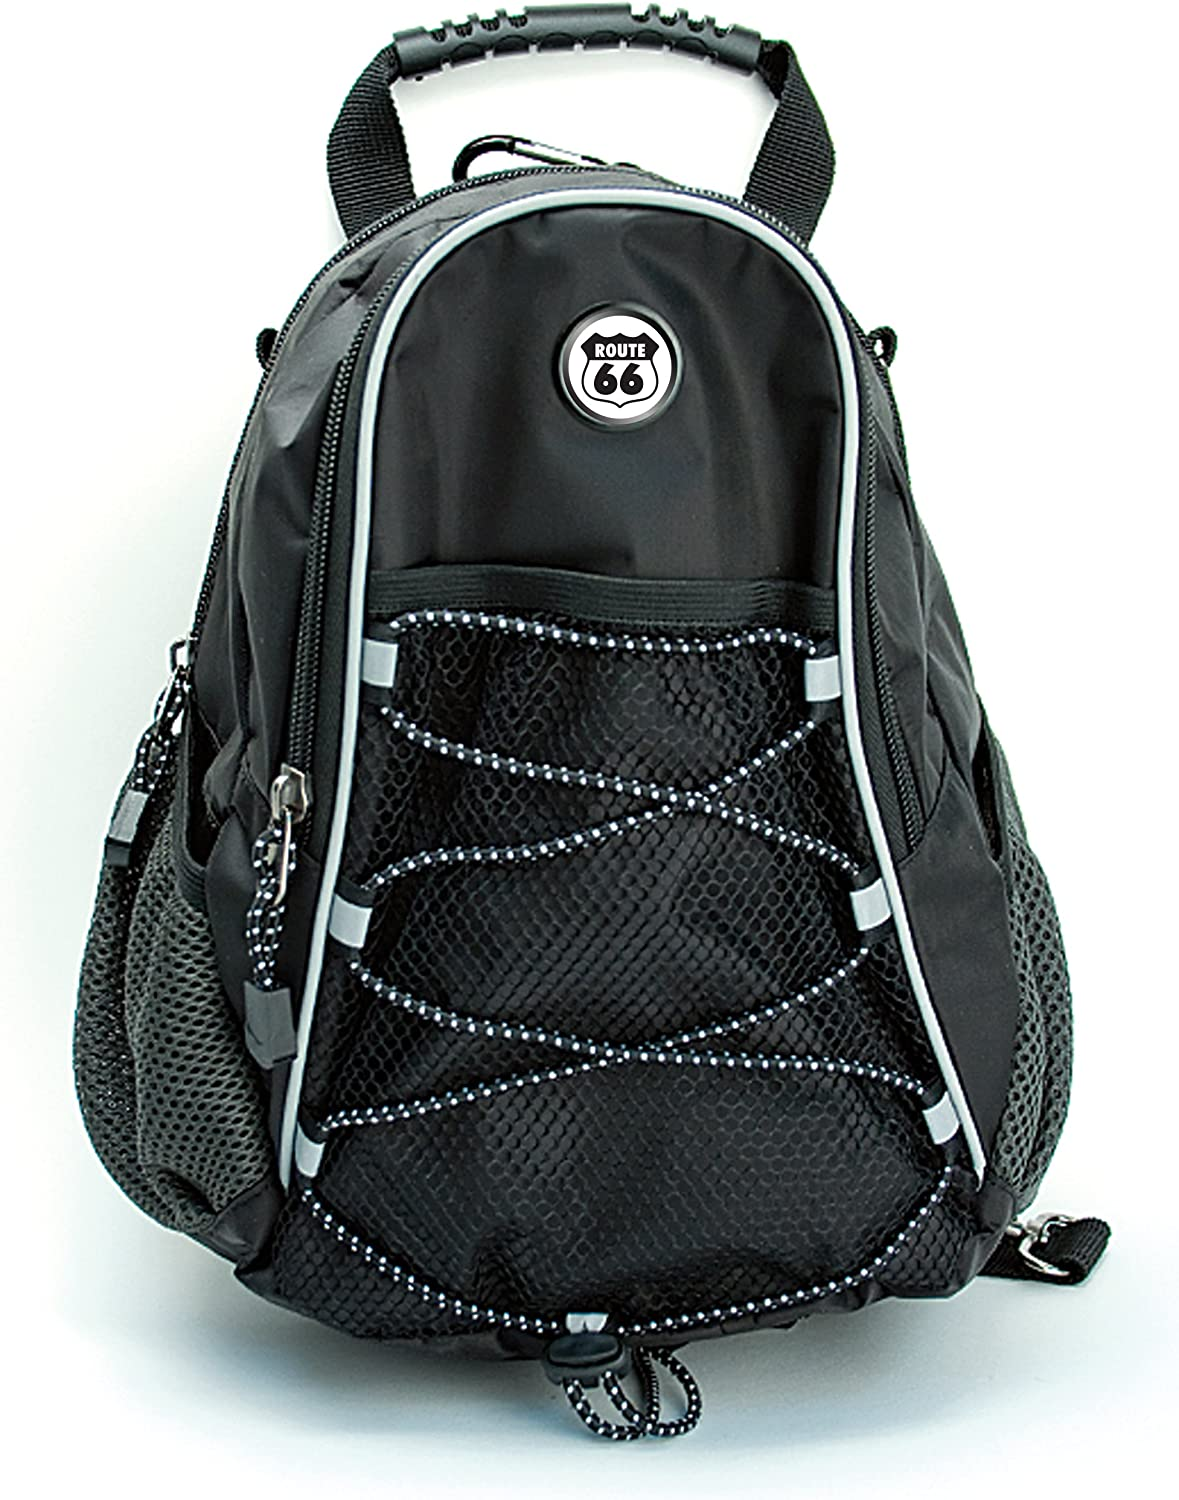 CMC Scottsdale Mini Day Pack with Route 66 Marker, schwarz